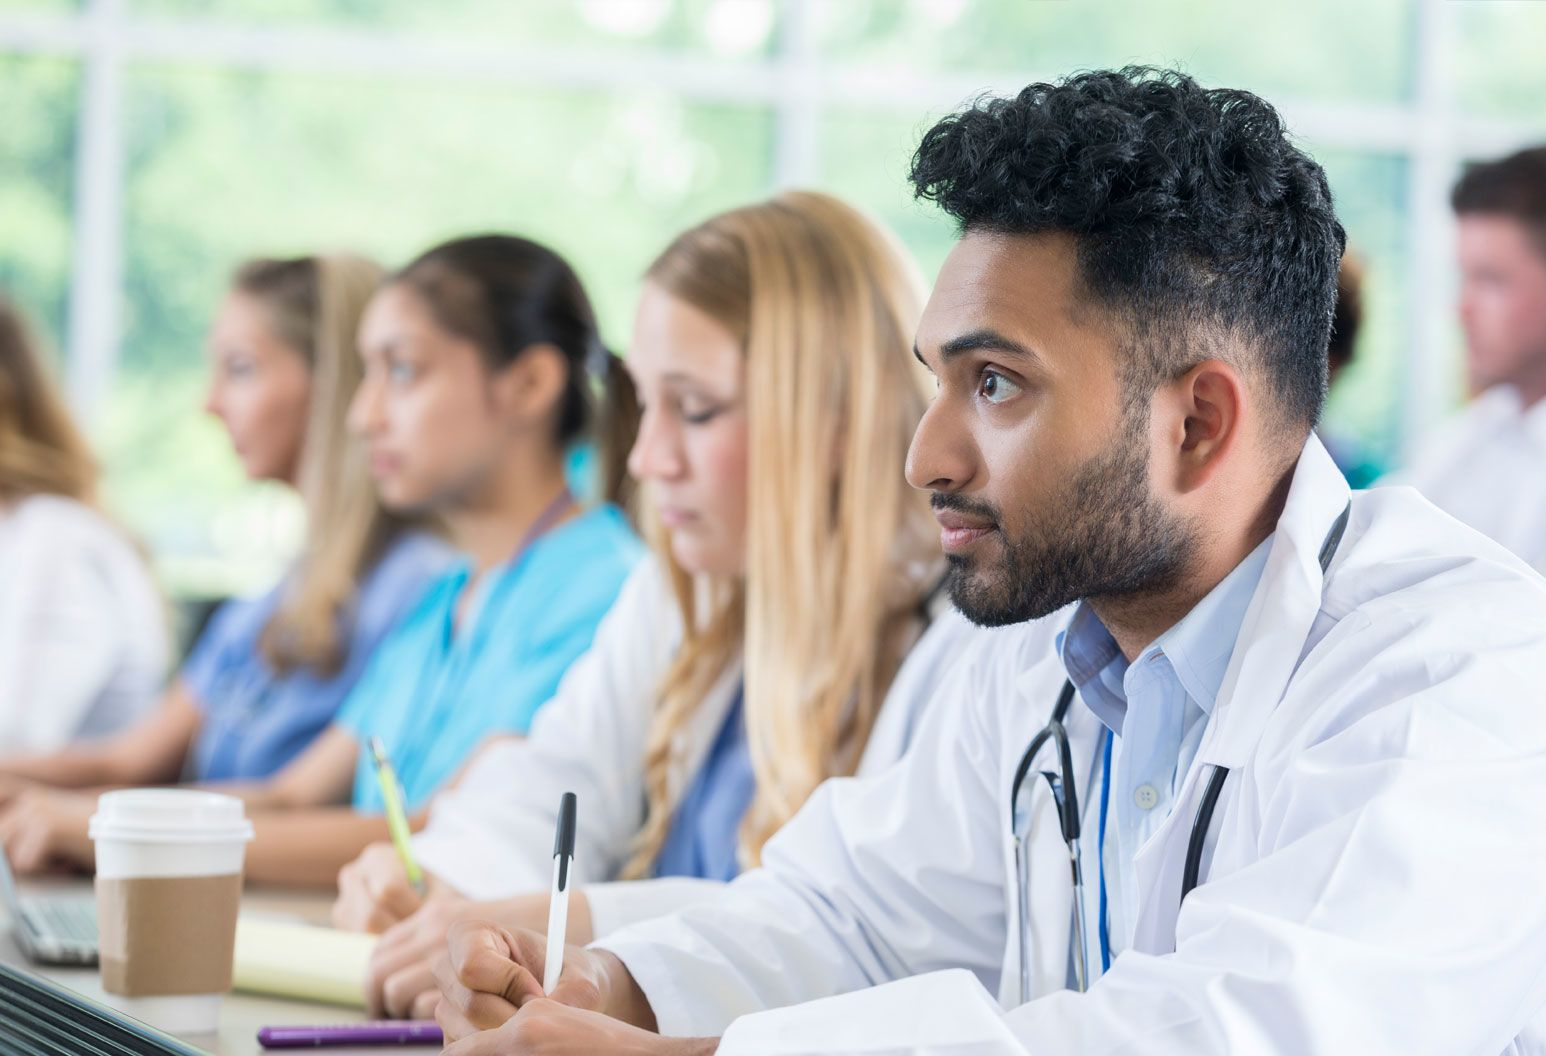 Medical professionals in a classroom setting. Male wearing stethoscope in the foreground looking engaged.